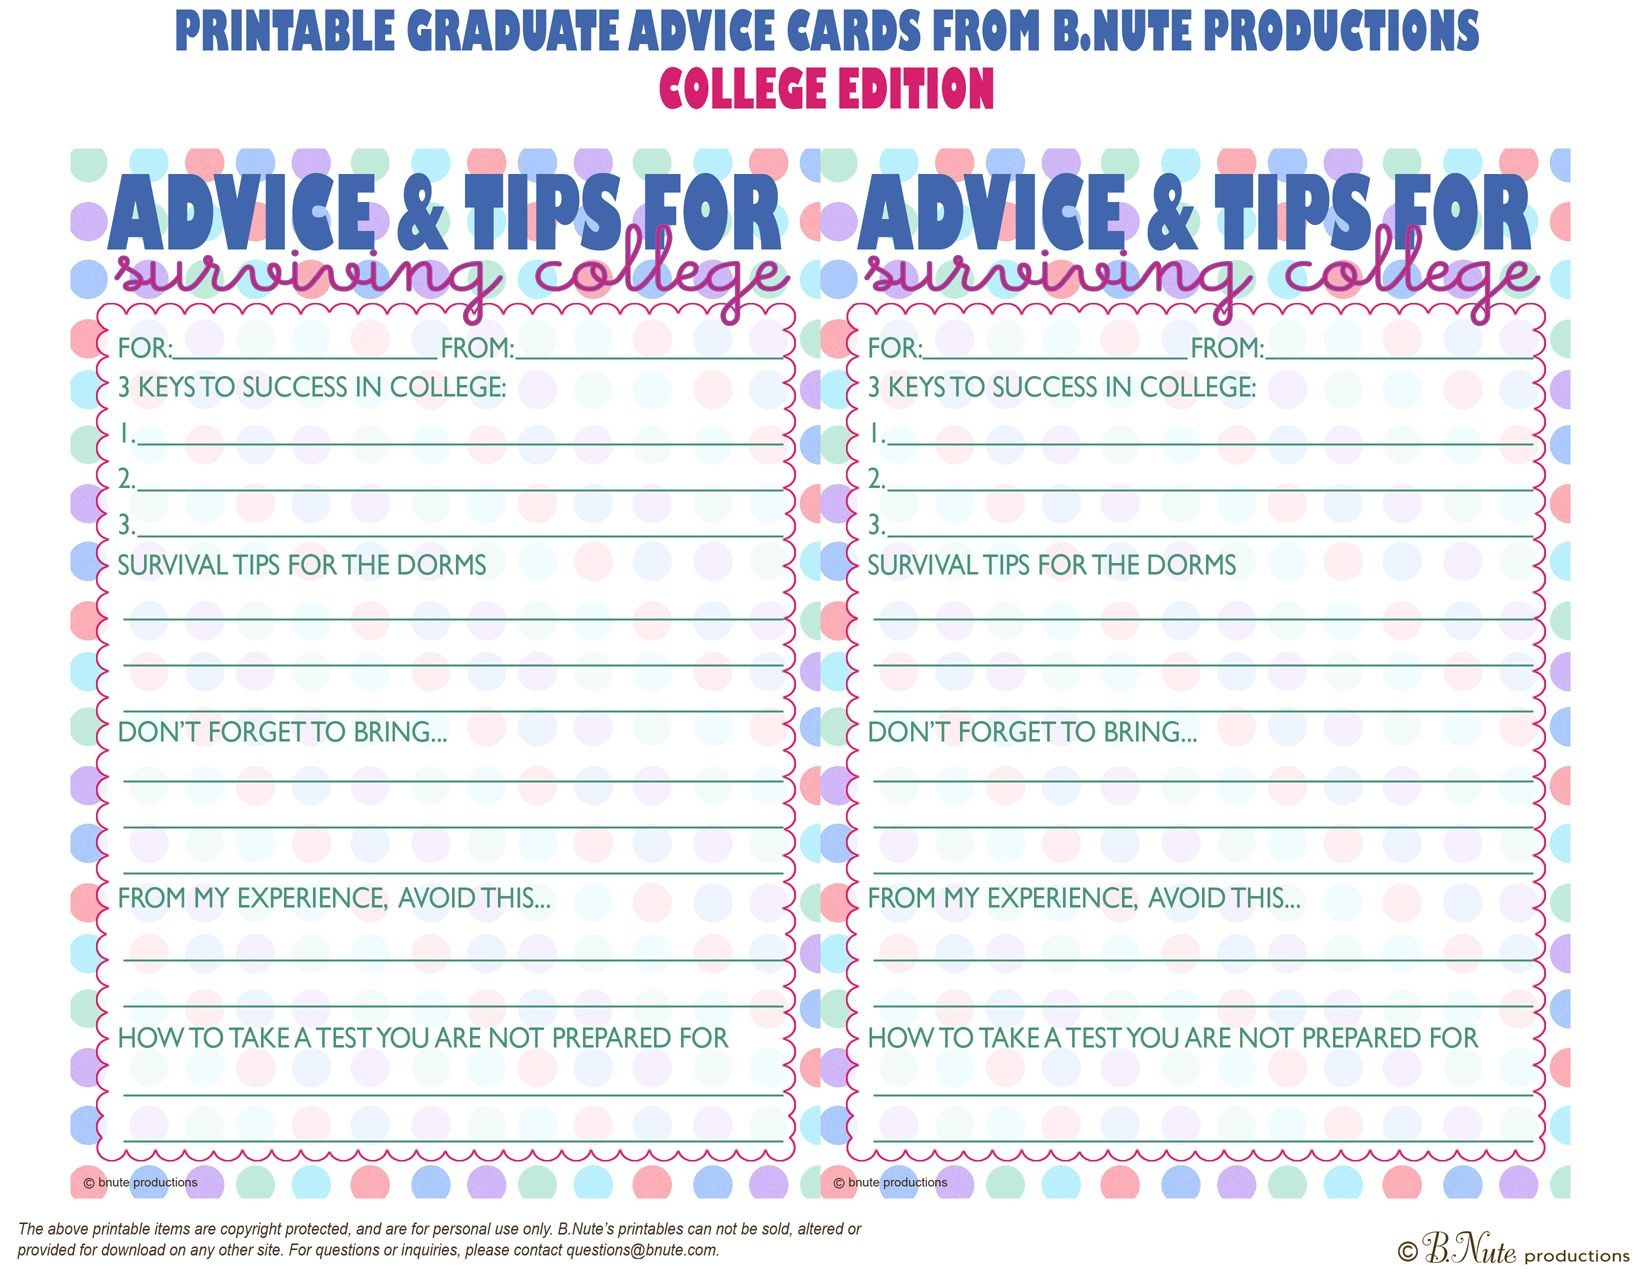 Bnute Productions: Free Printable Graduate Advice Cards - College - Free Printable Graduation Advice Cards